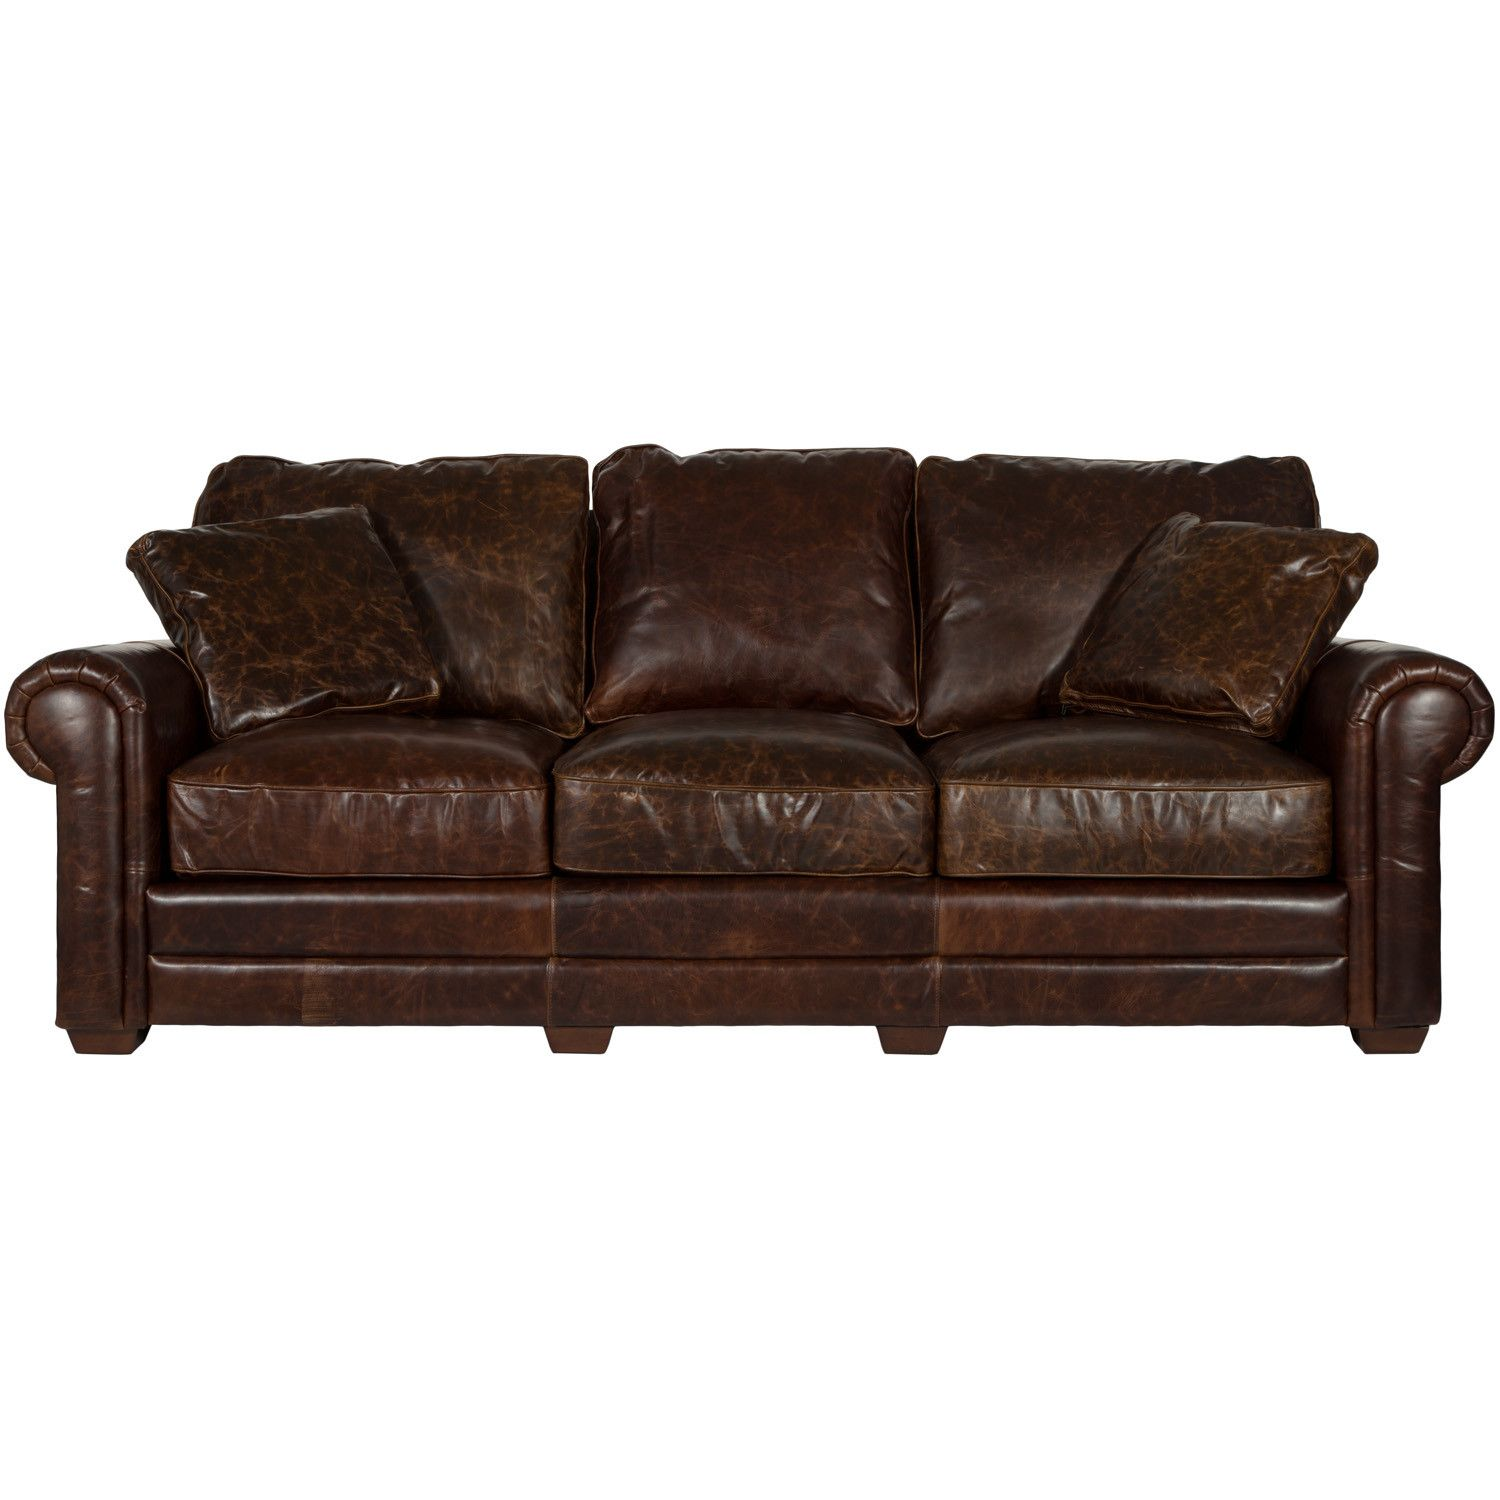 Astoria Grand Belfield Leather Sofa | Man Decor | Leather sofa, Sofa ...